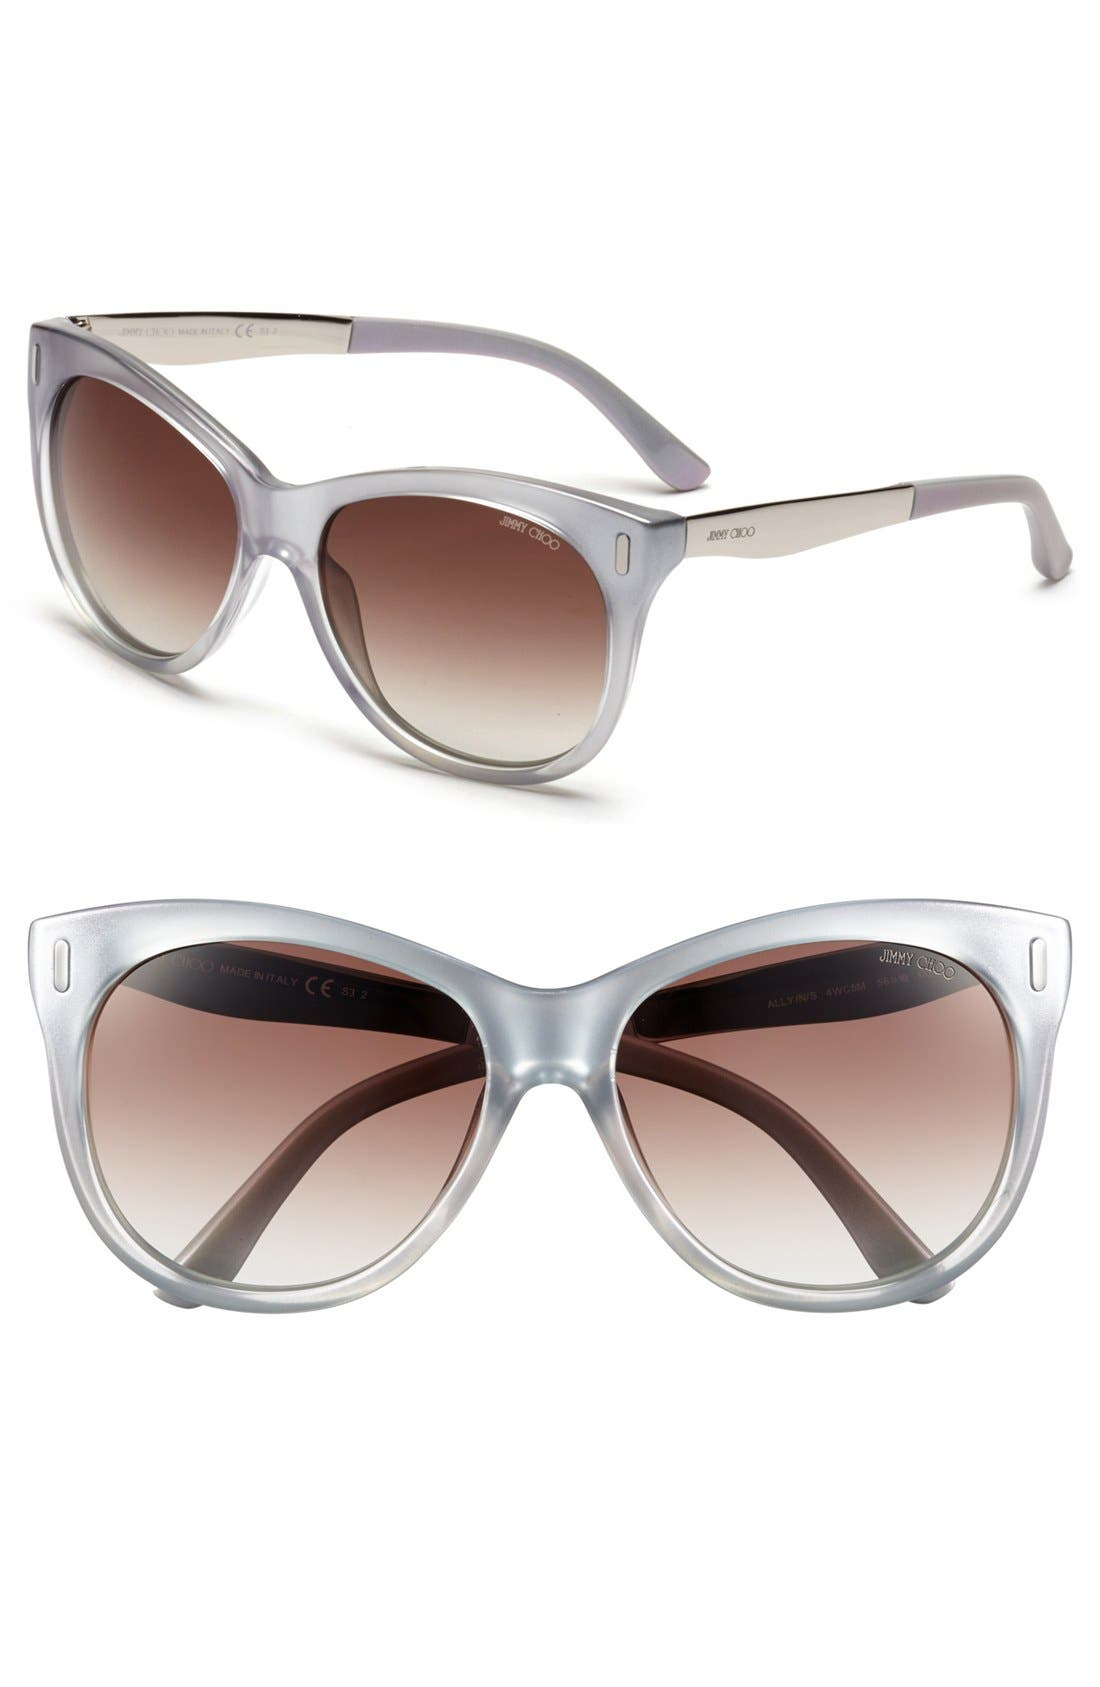 JIMMY CHOO, 56mm Retro Sunglasses, Main thumbnail 1, color, 040